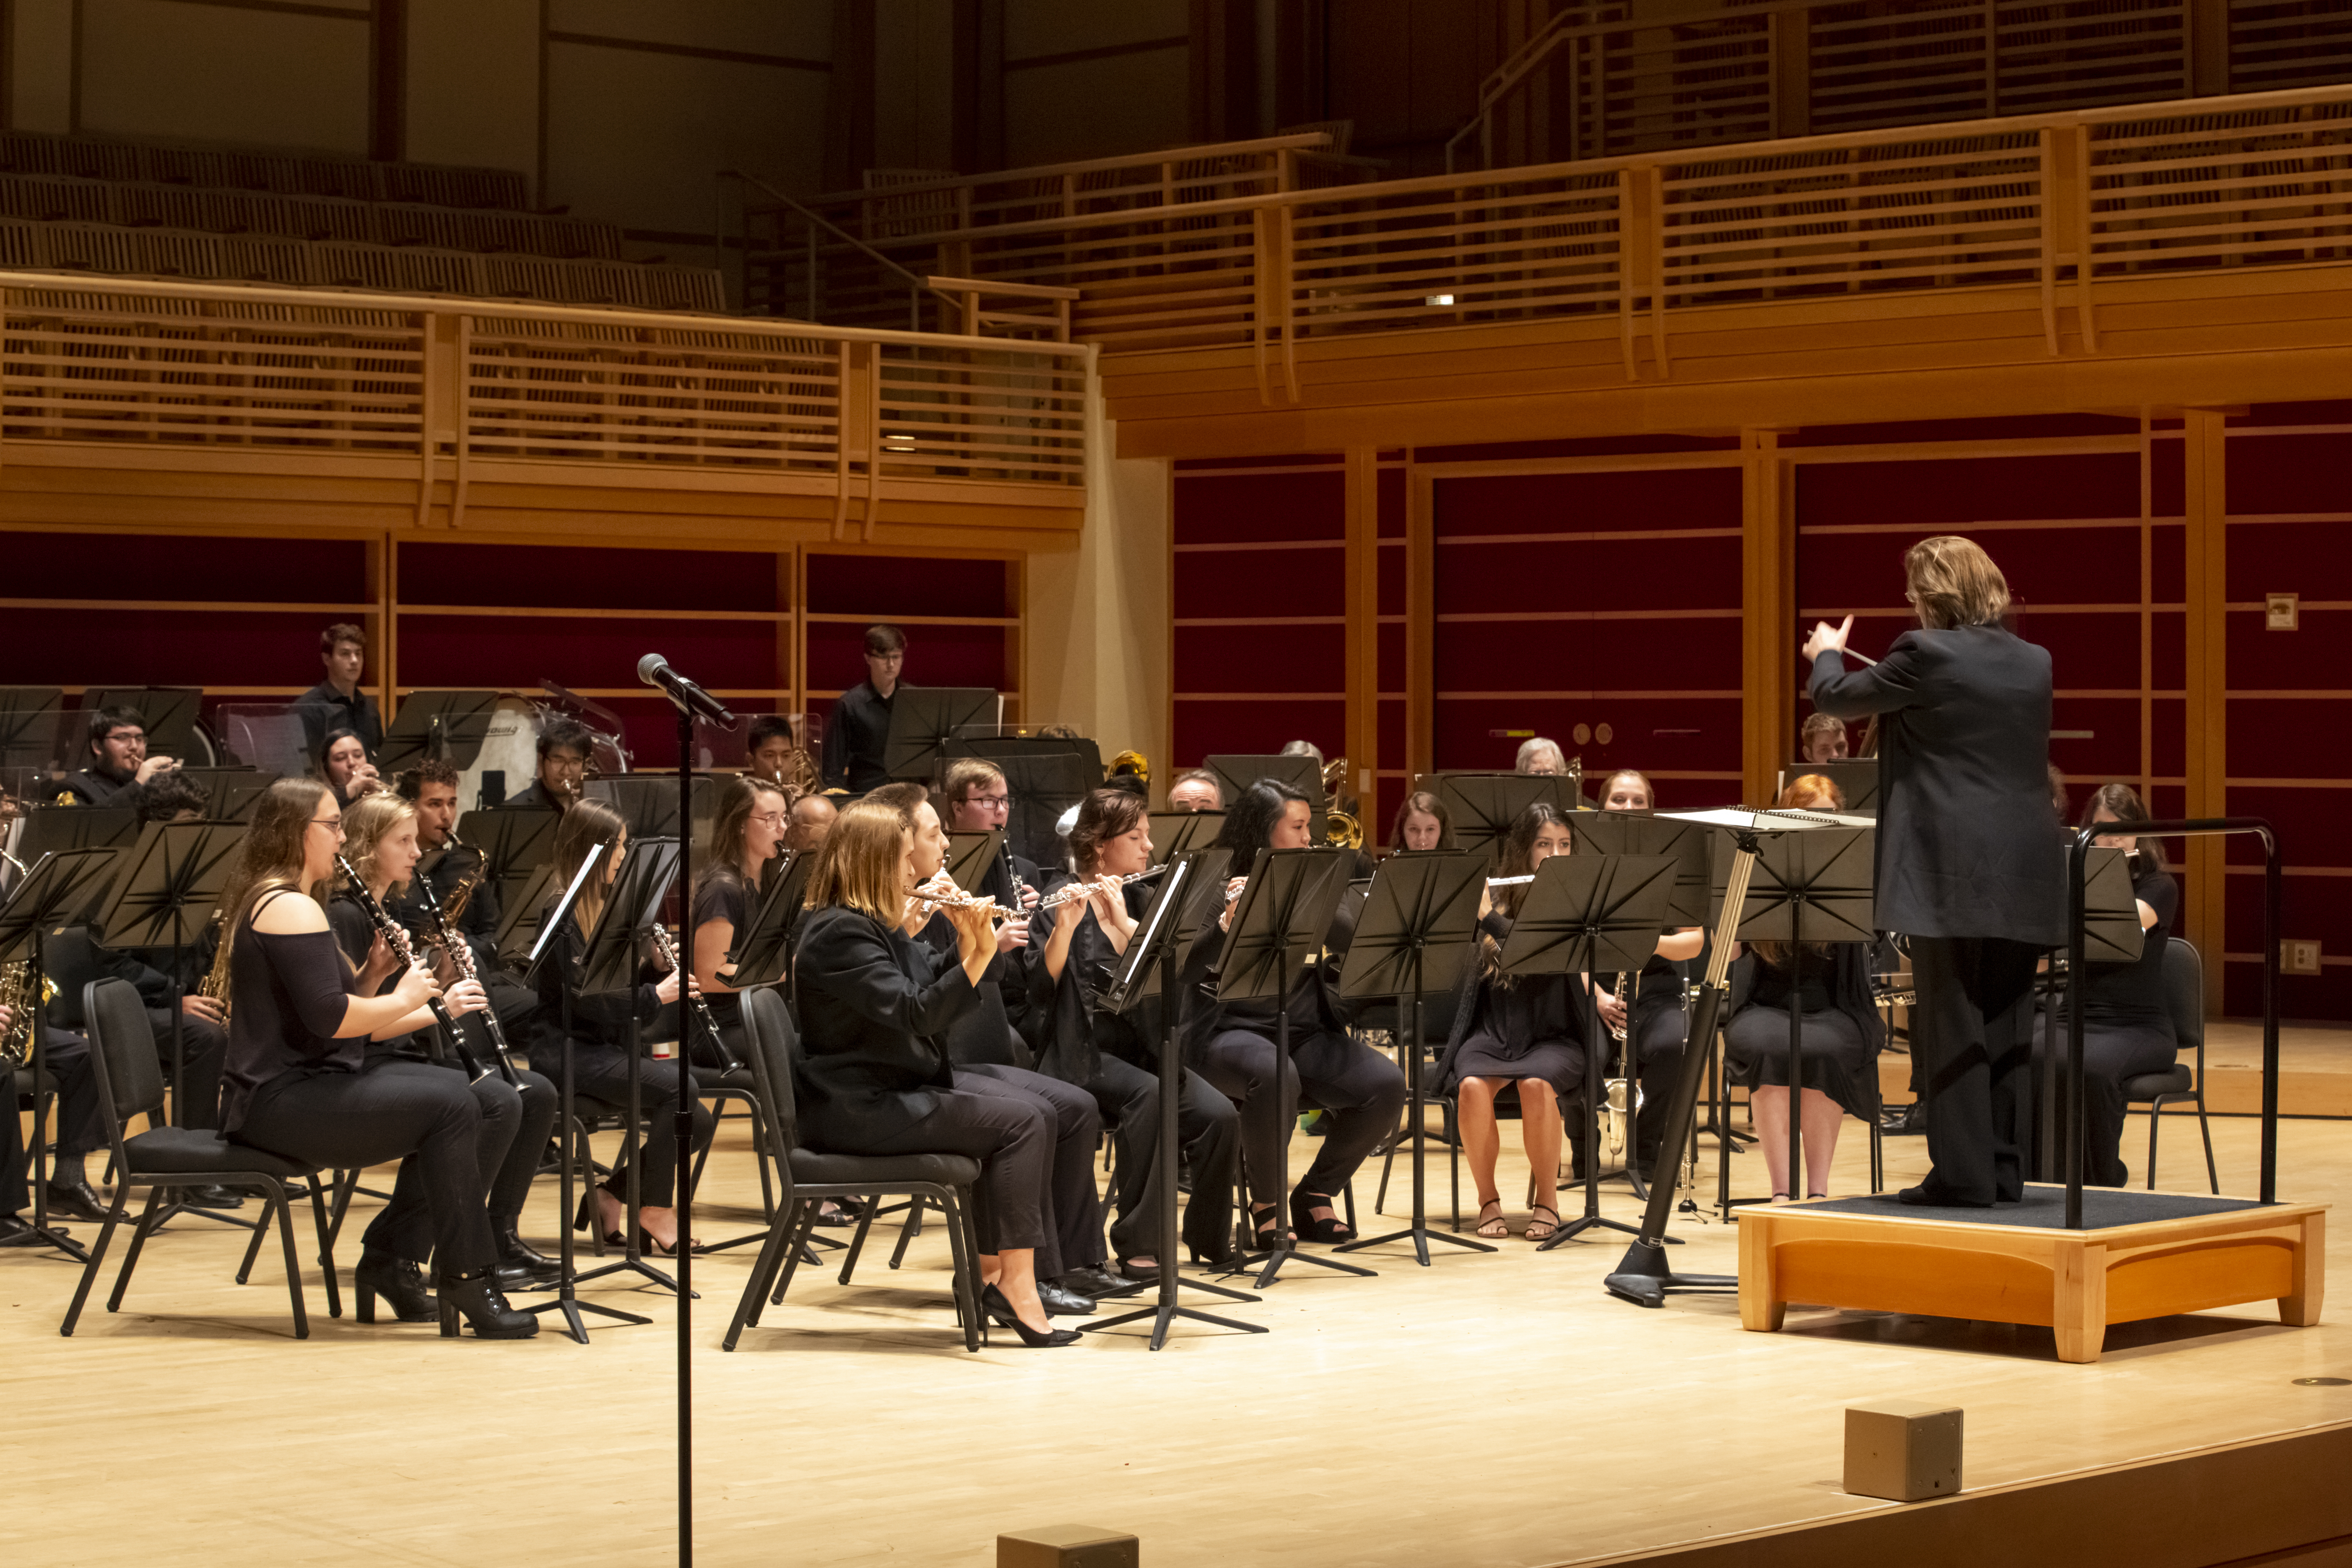 Dr. Mieder conducting the concert band on weill hall stage